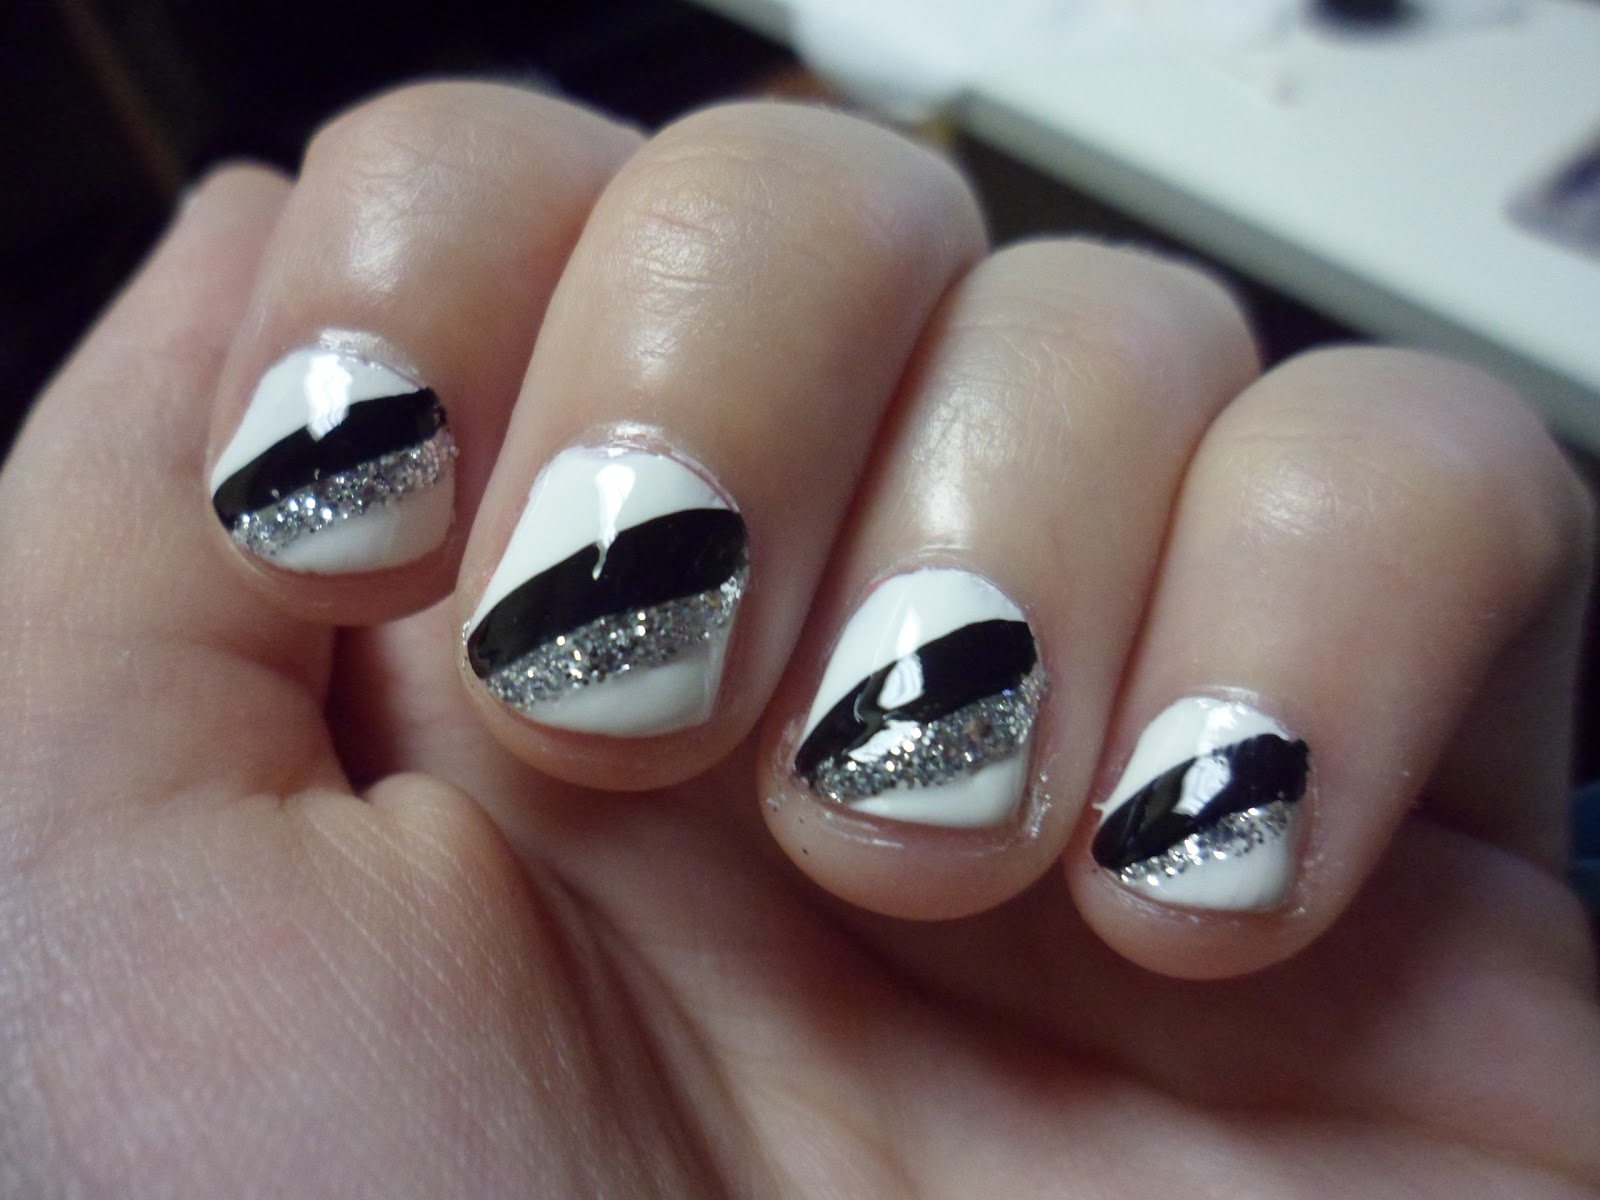 Luhivy's favorite things: Simple contrasting stripped Nail Art